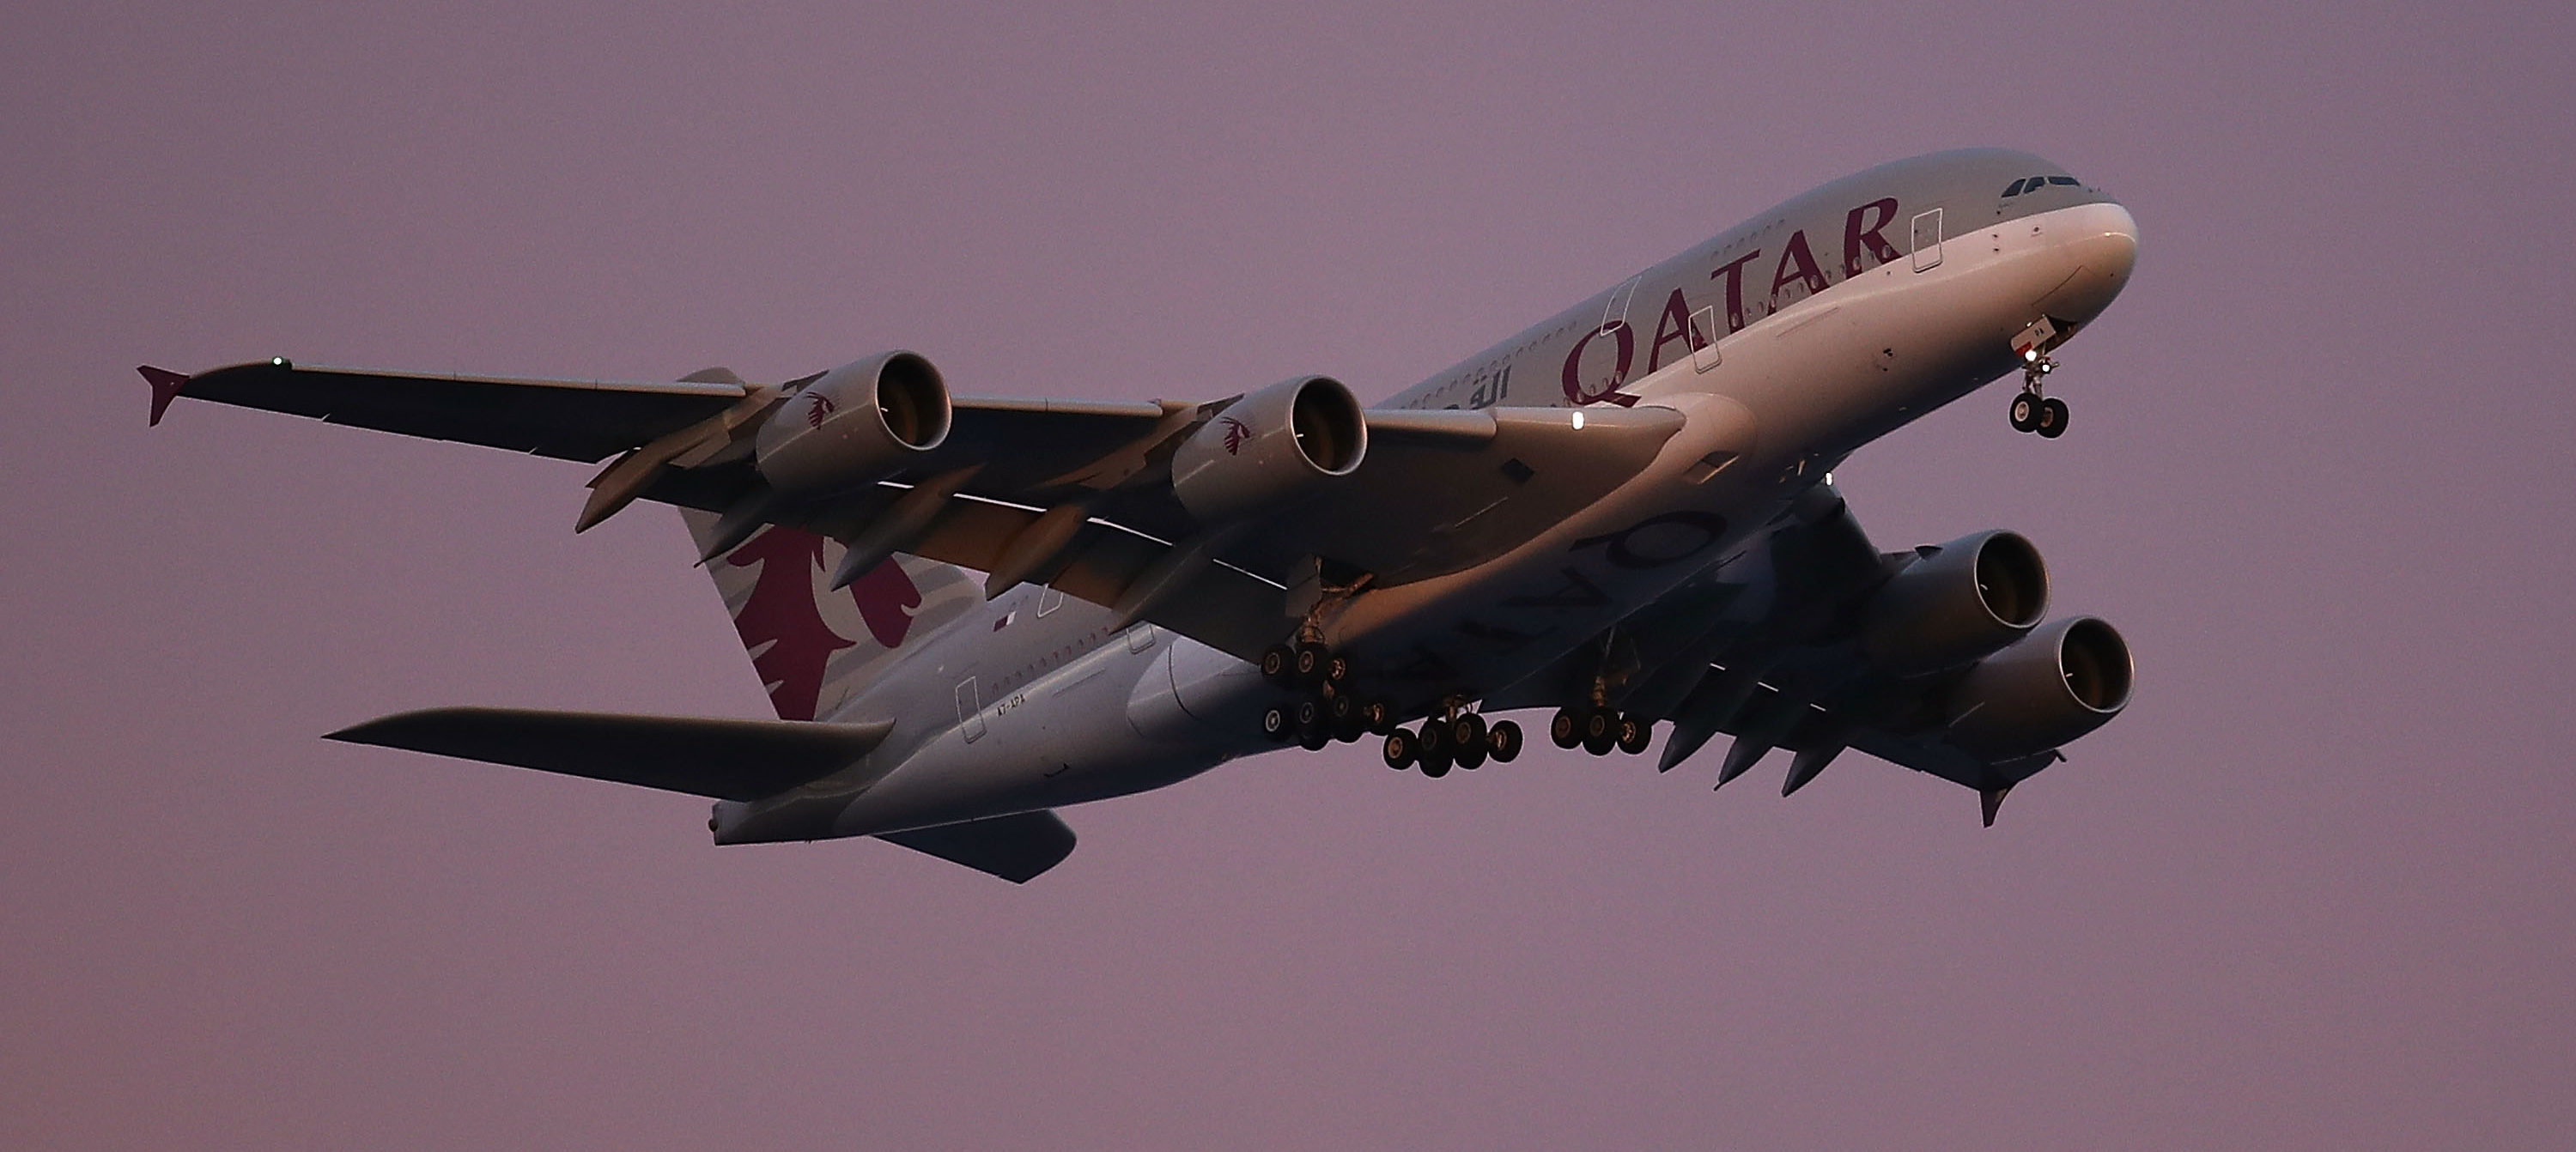 SYDNEY, AUSTRALIA - AUGUST 19: A Qatar Airways Airbus A380 comes in to land on August 19, 2018 in Sydney, Australia. (Photo by Ryan Pierse/Getty Images)